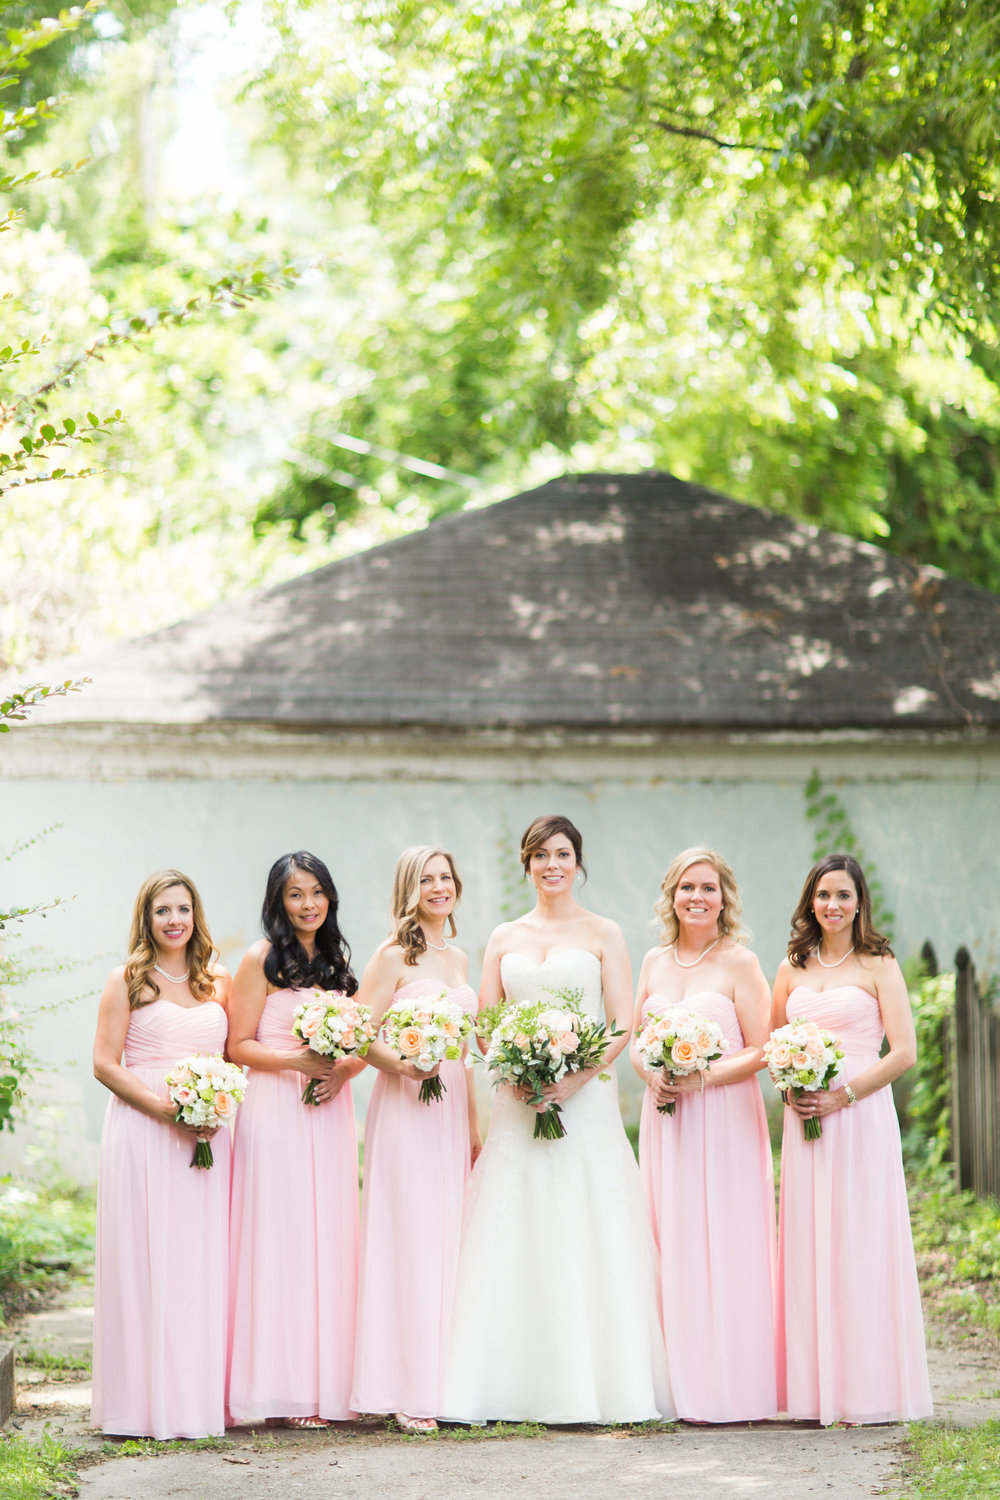 87867-chapelhillnctraditionalsouthernweddingbridesmaidschapelhillnctraditionalsouthernweddingbridesmaids.jpg